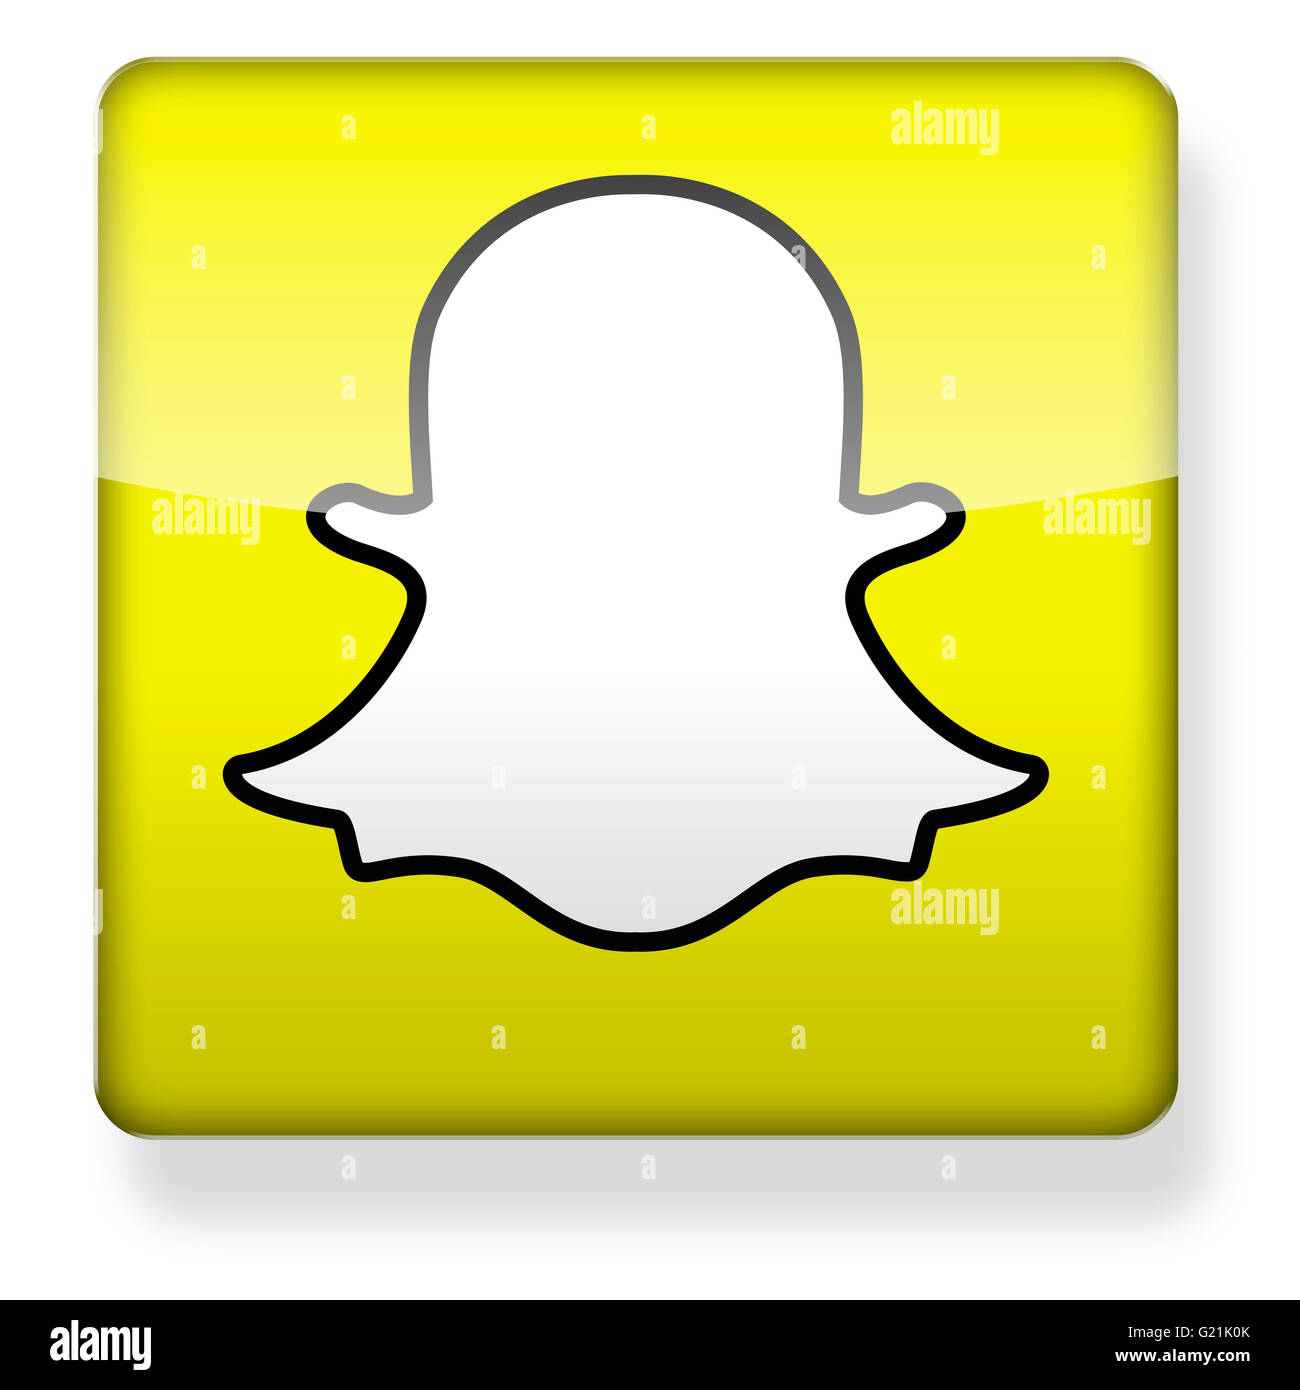 how to tell what email is associated with snapchat account